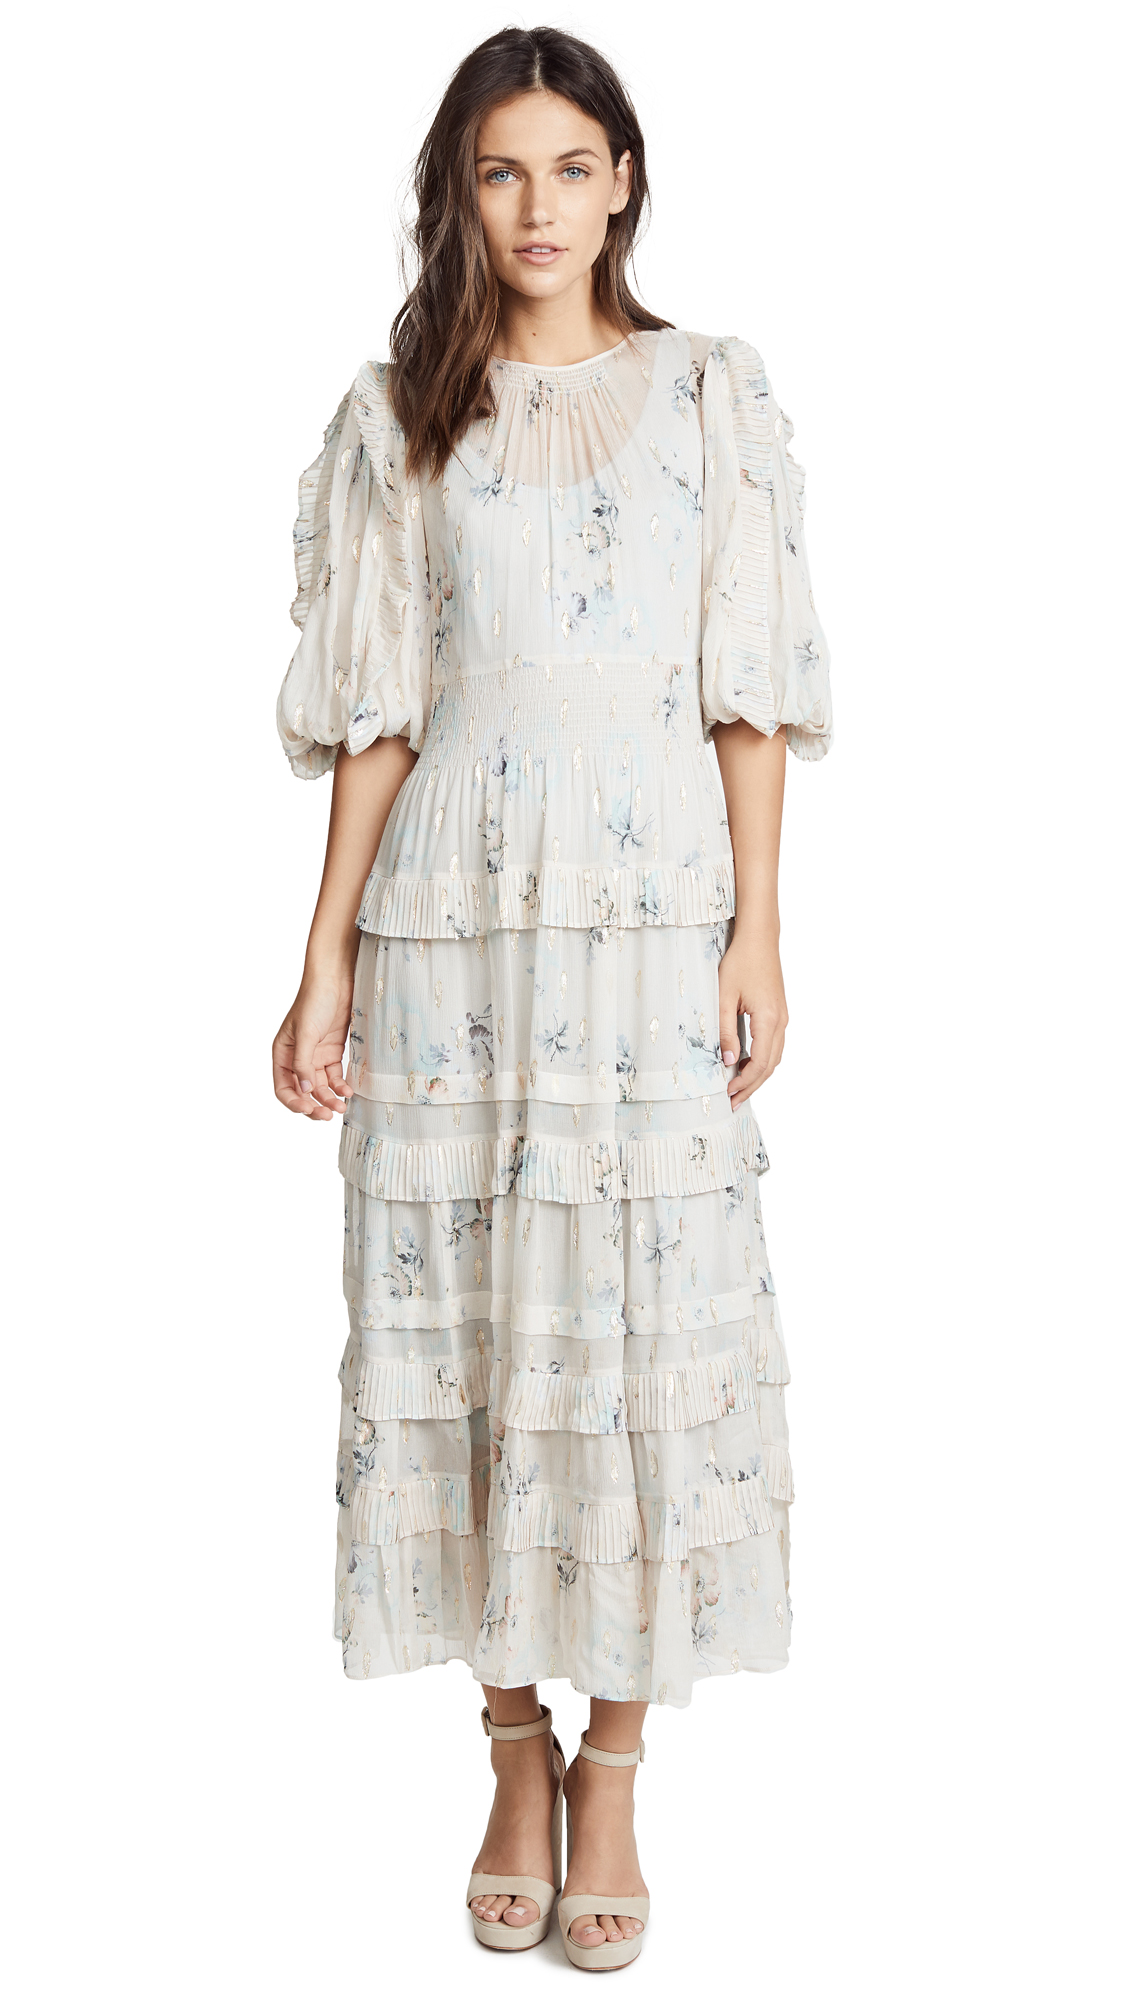 Rebecca Taylor Long Sleeve Faded Floral Dress